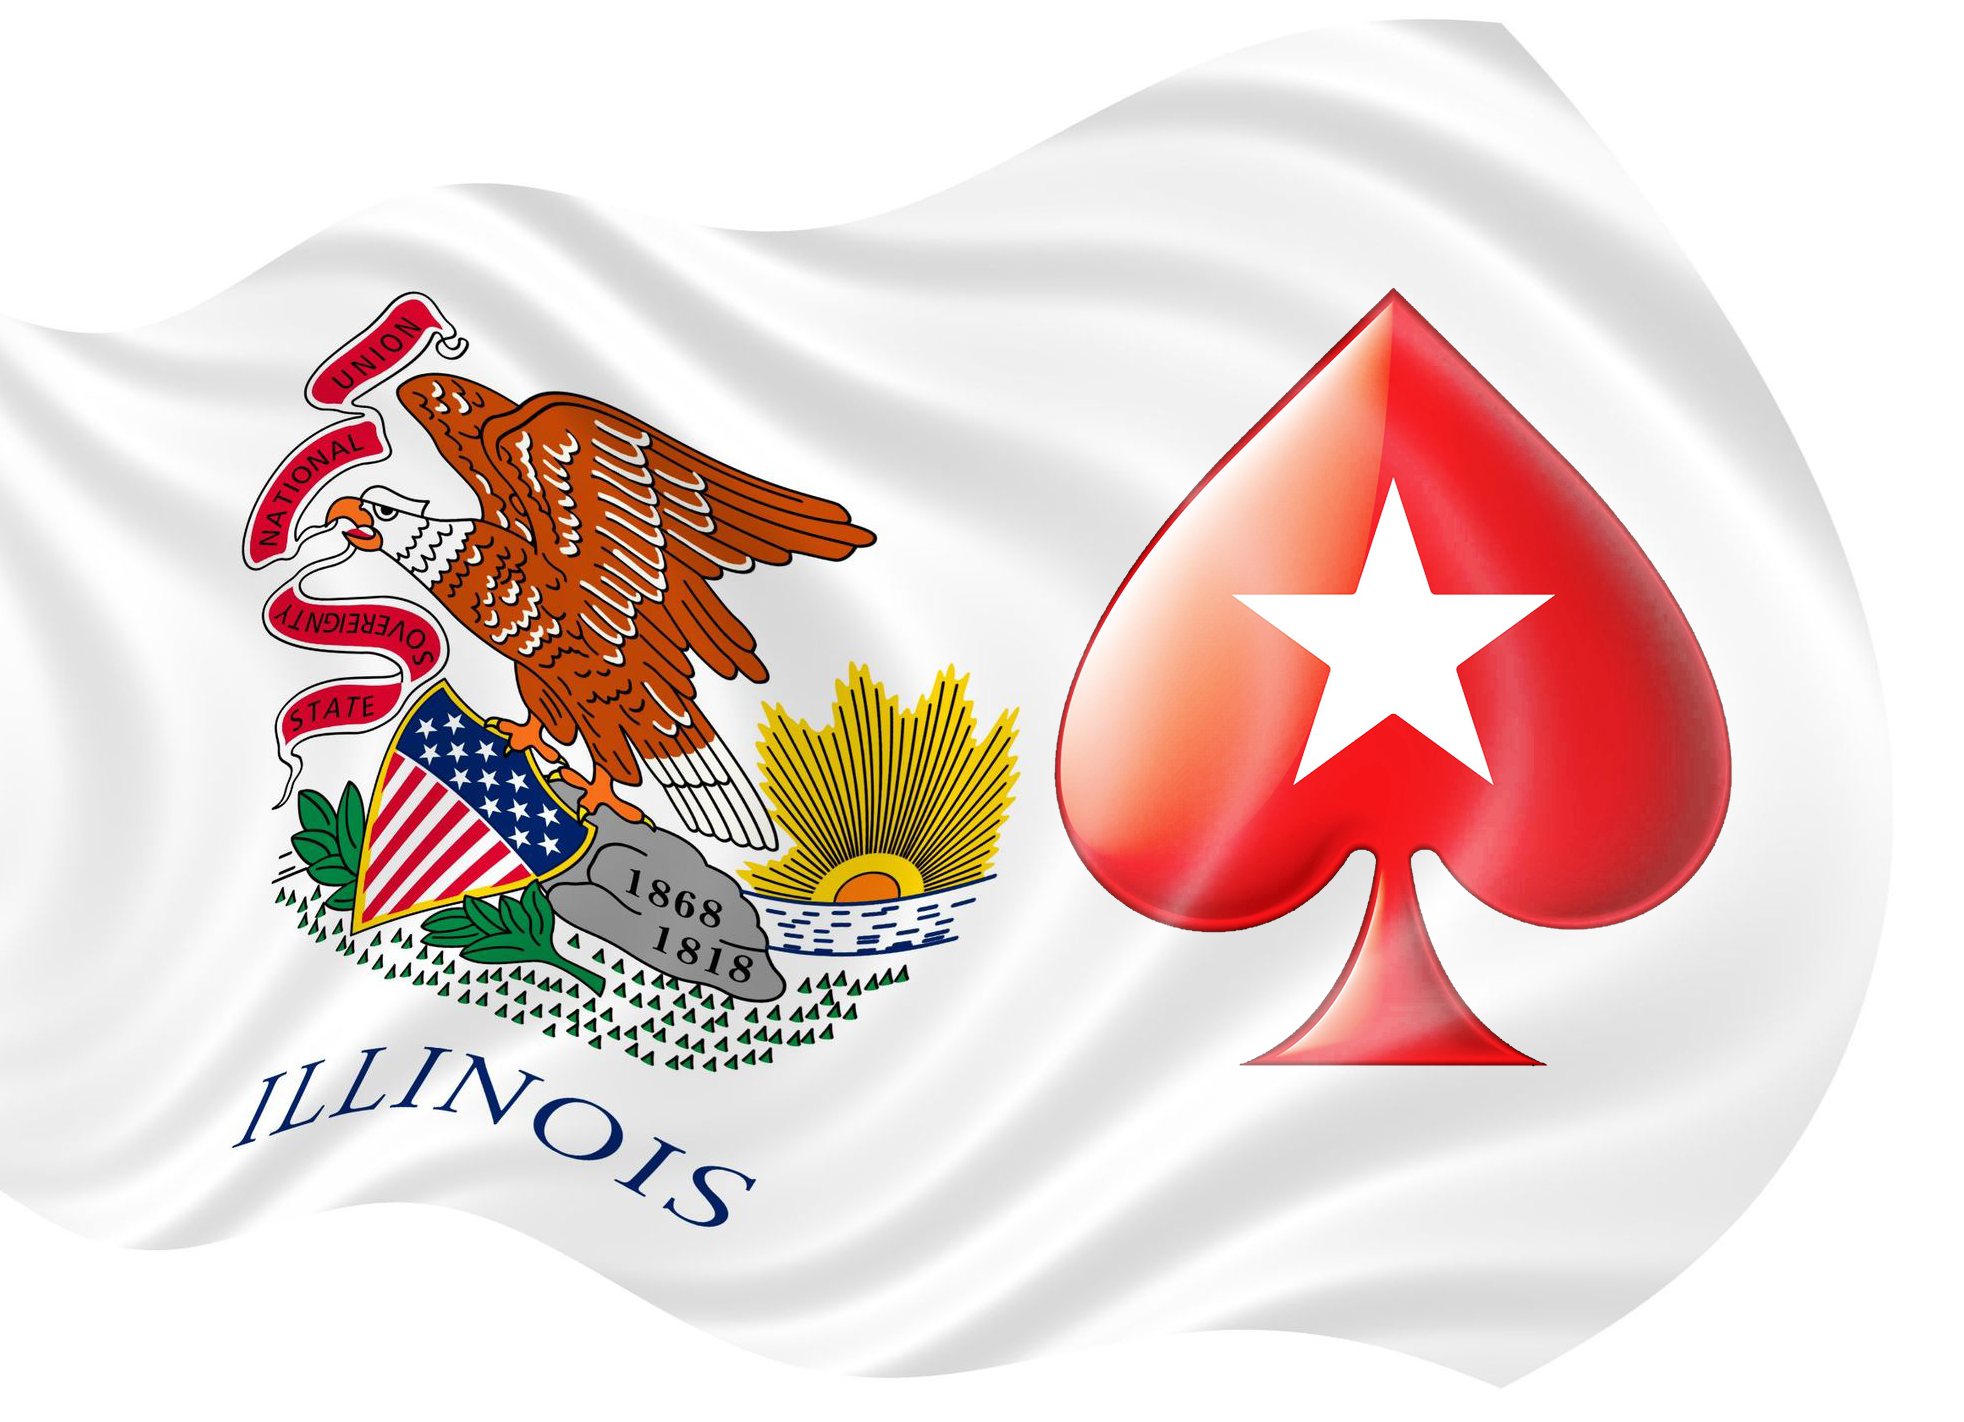 Proposed Gambling Bill to Allow PokerStars License in Illinois